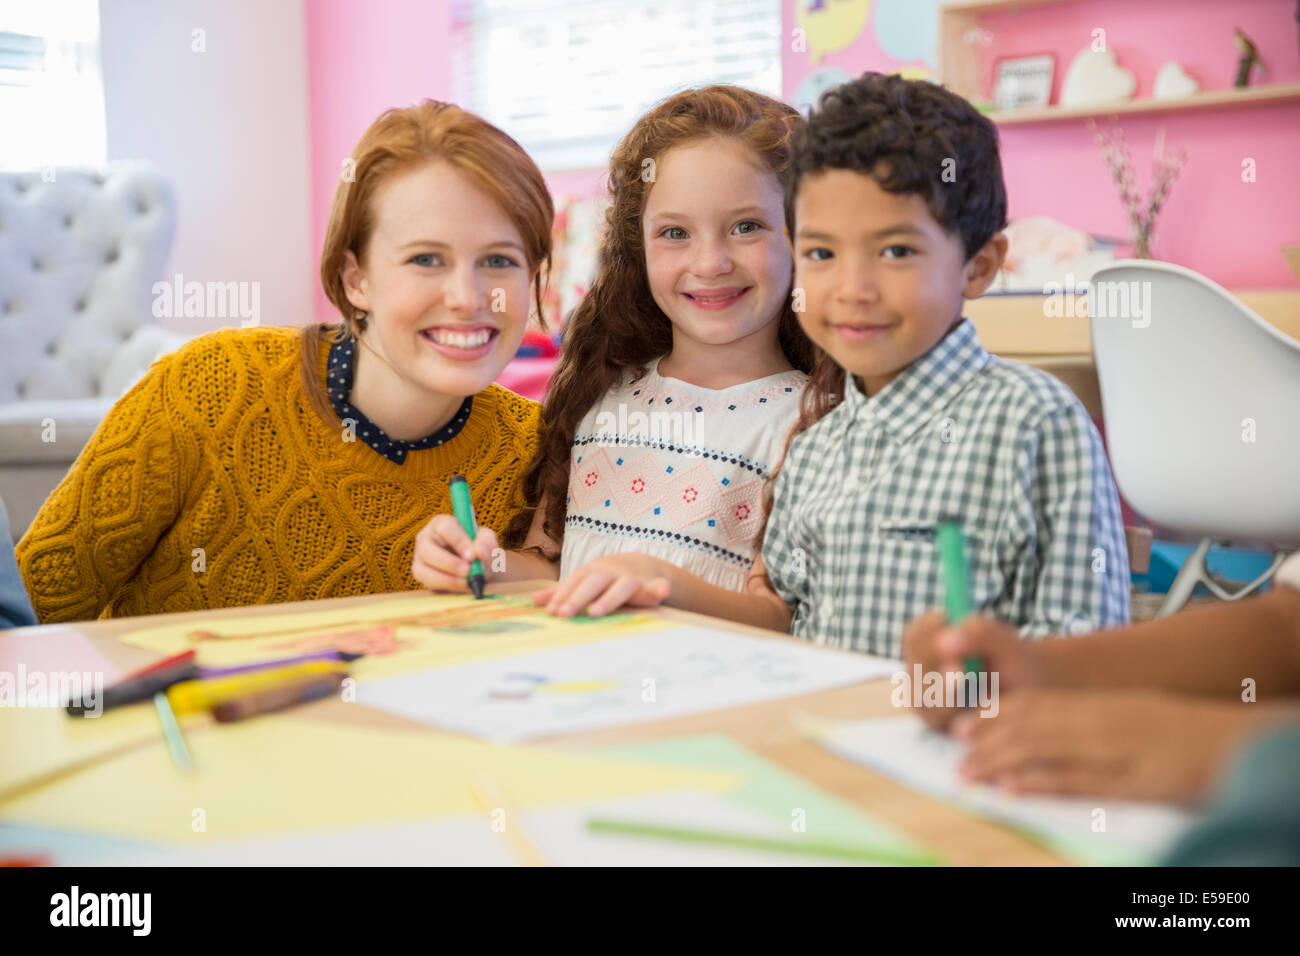 Students and teacher smiling in classroom - Stock Image